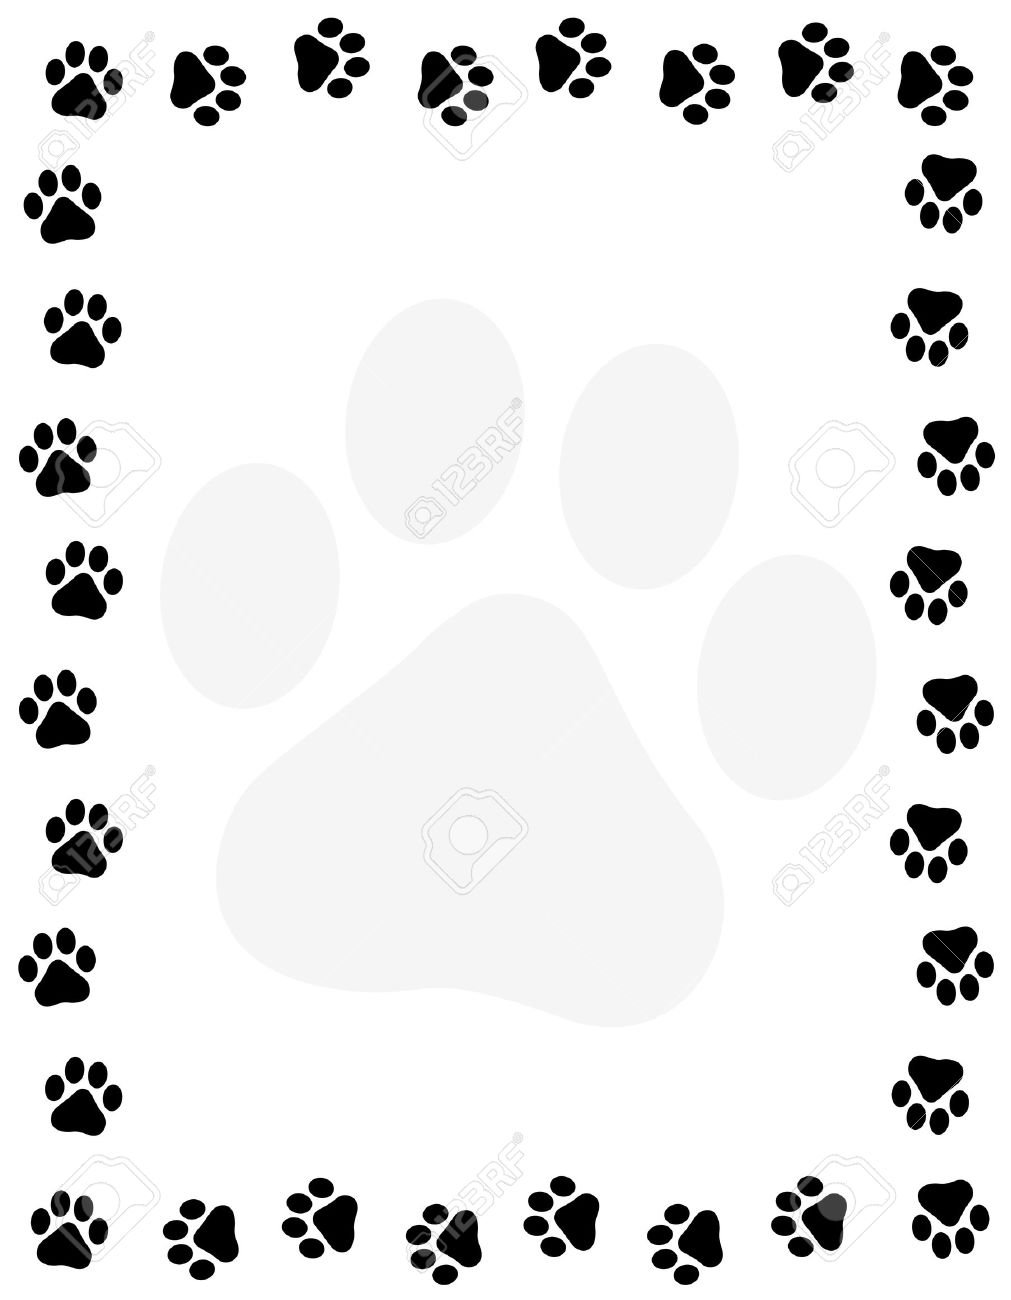 1011x1300 Dog Pawprint Border Frame On White Background Royalty Free